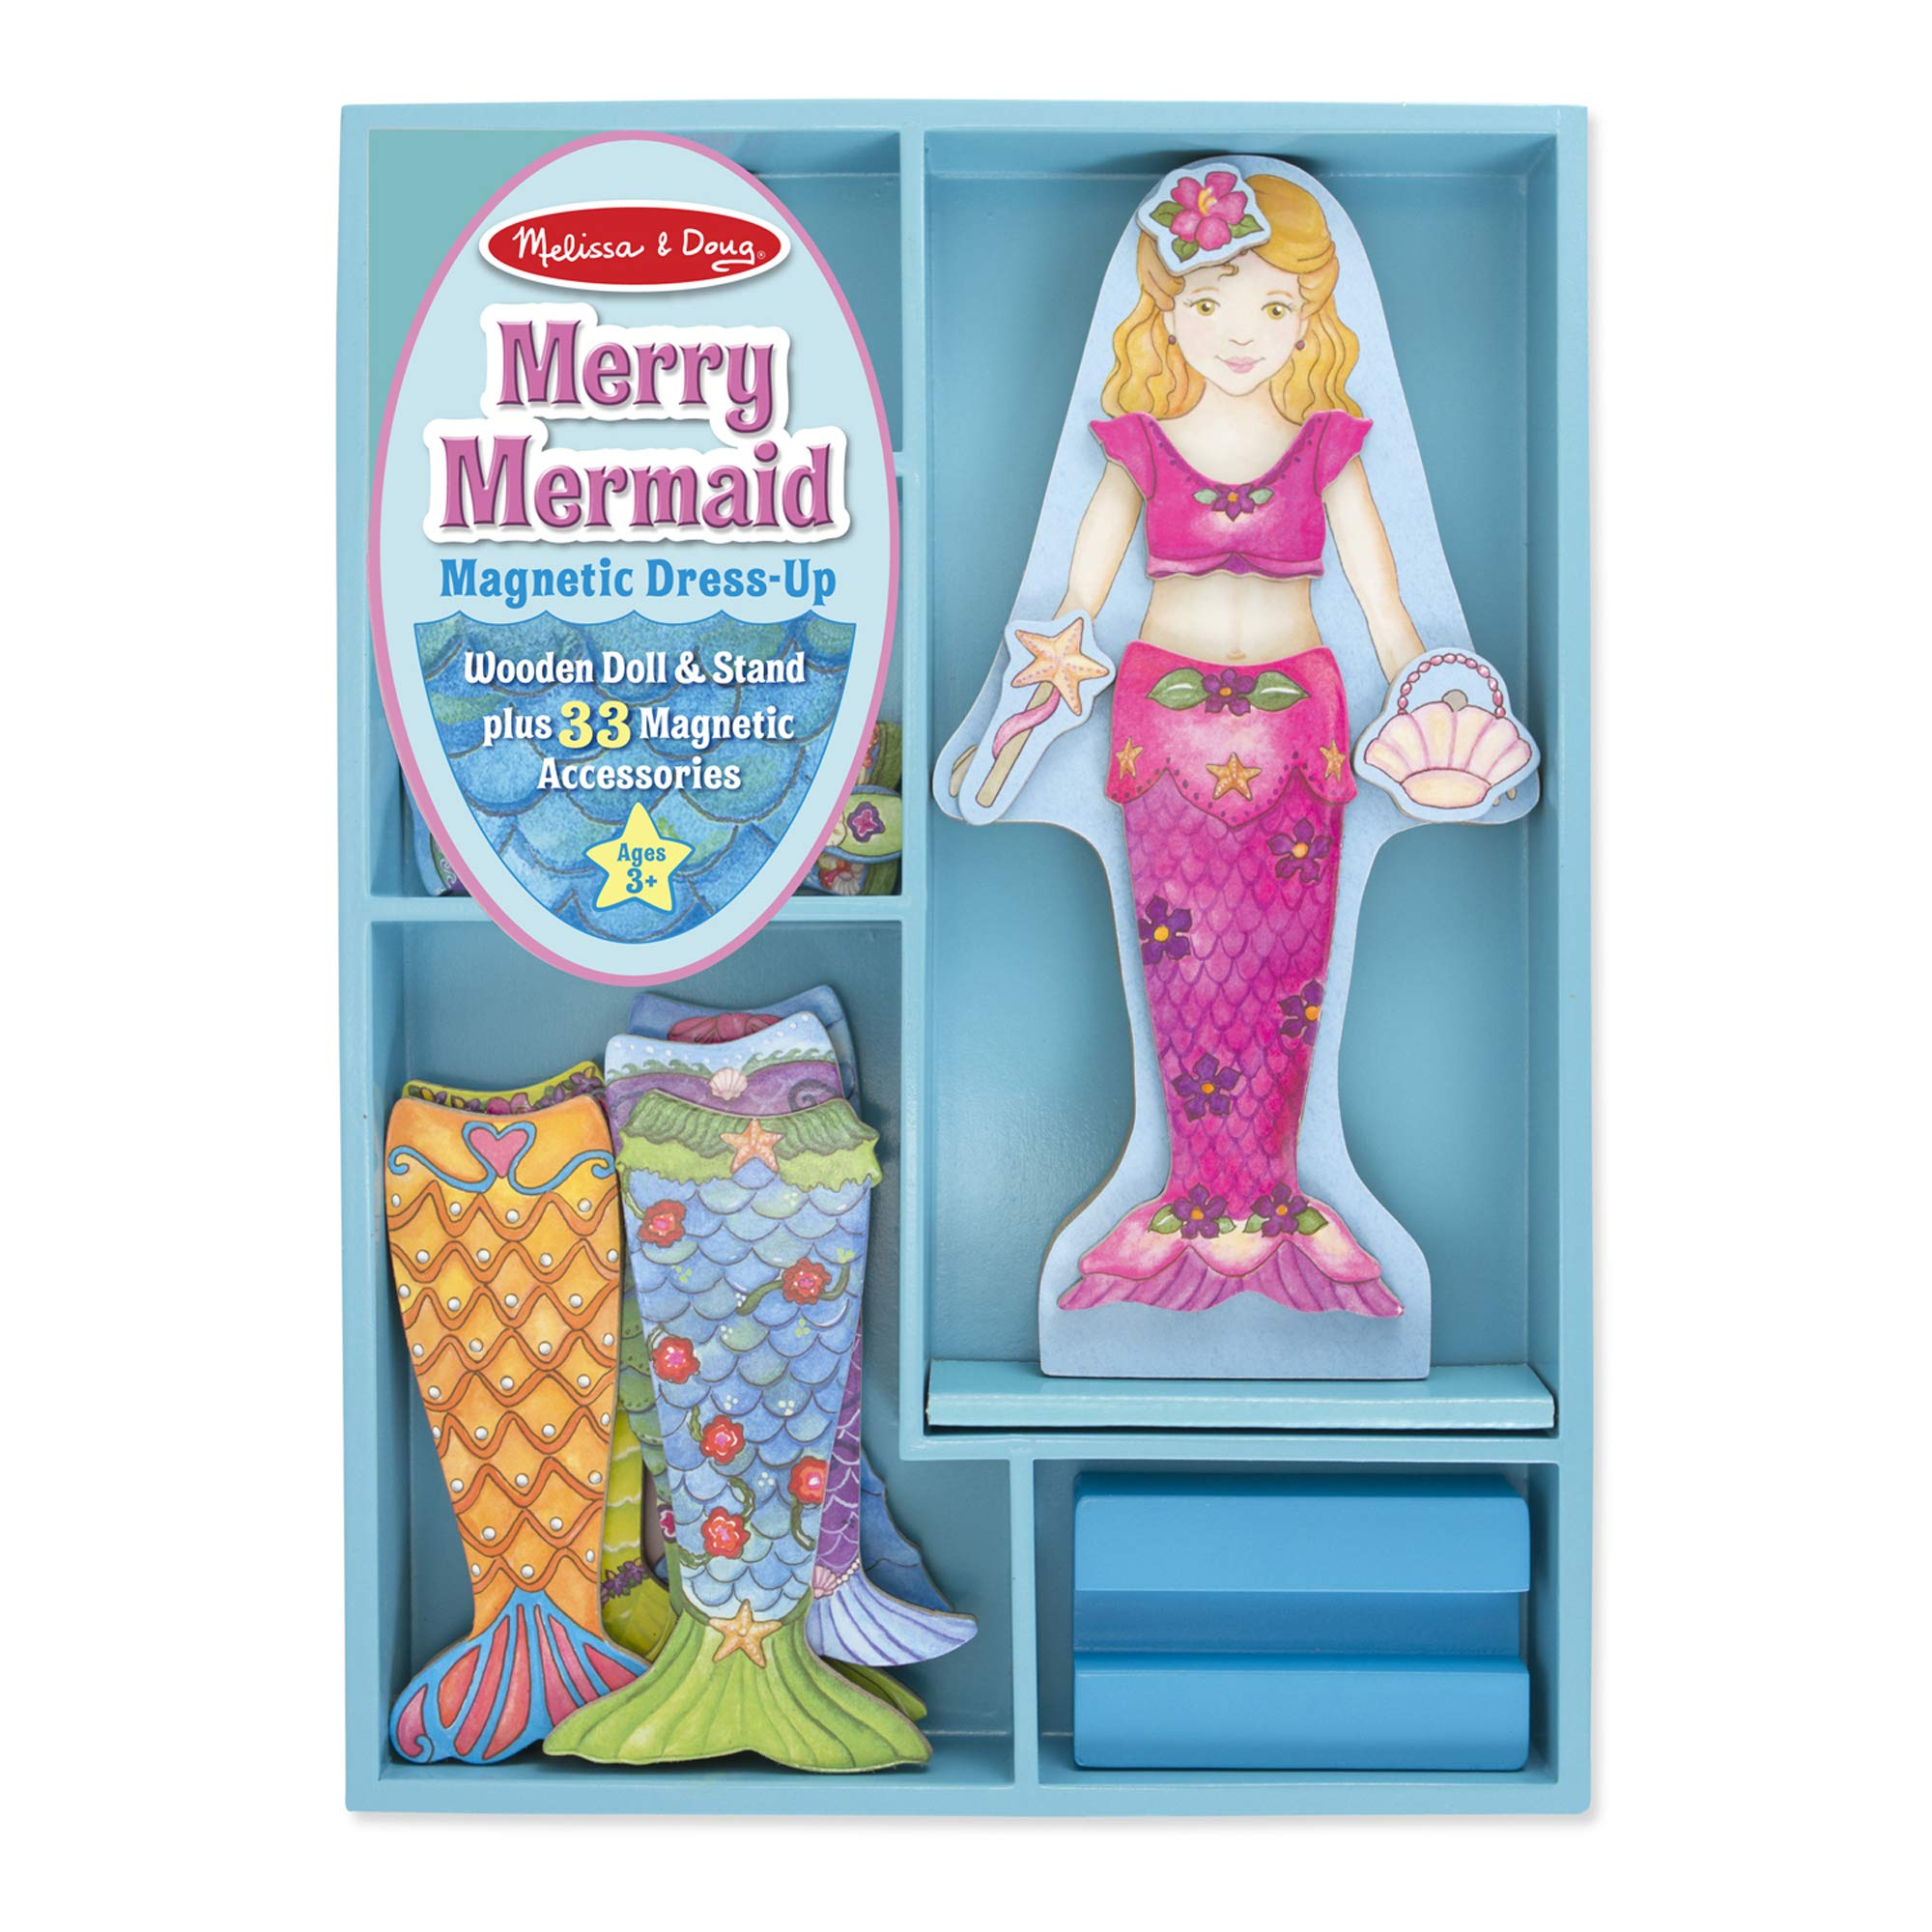 Melissa & Doug Merry Mermaid Wooden Dress-Up Doll and Stand - 33 Magnetic Accessories by Melissa & Doug